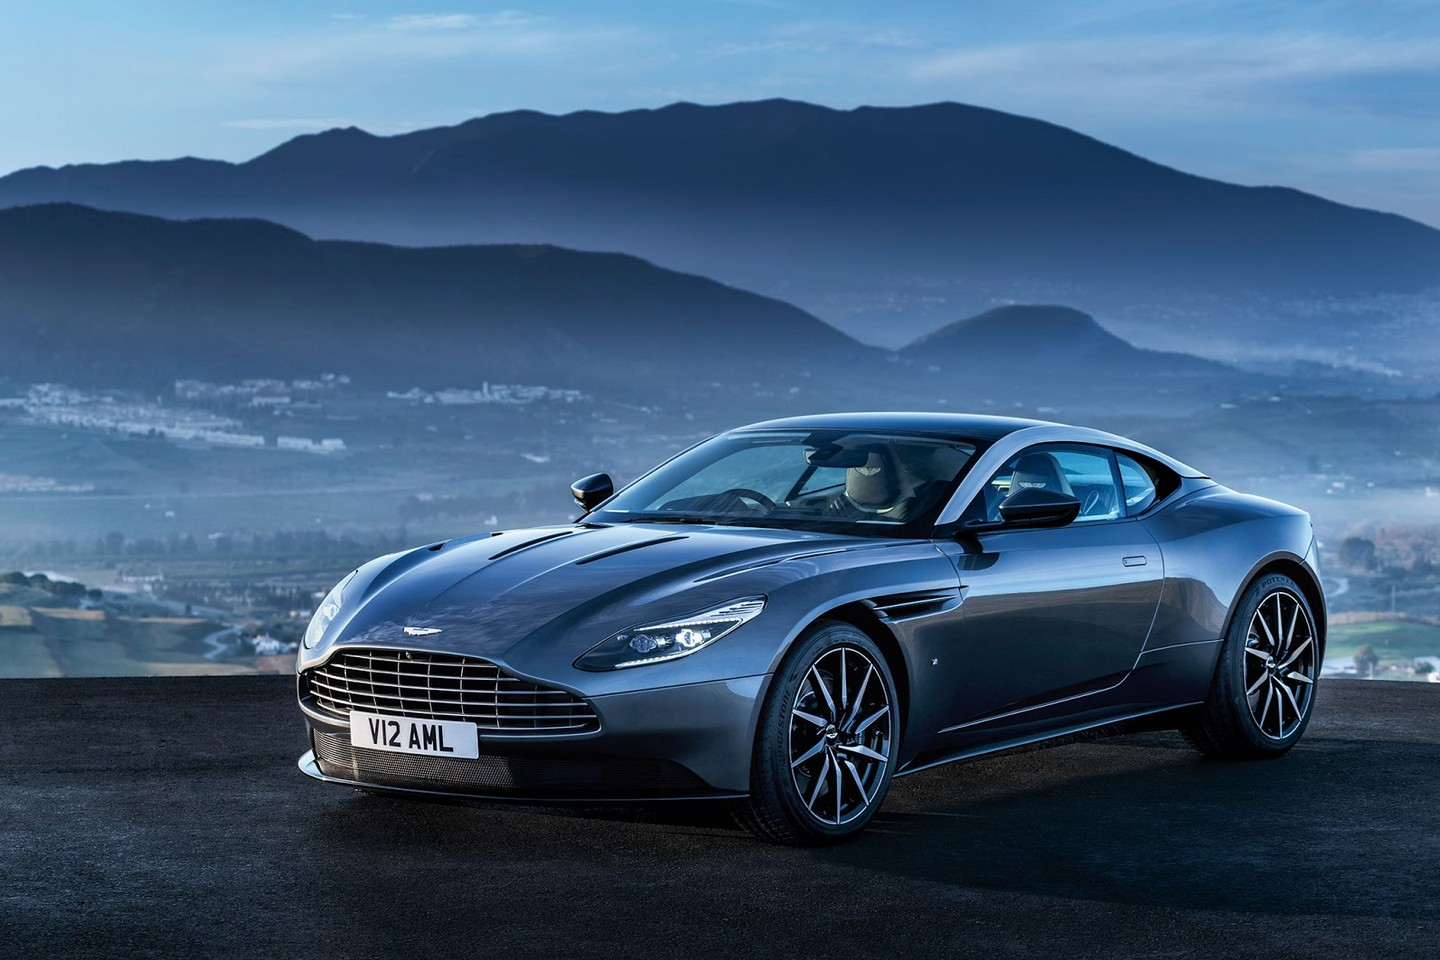 2017 Aston Martin DB11 First Drive Review - MotorTrend